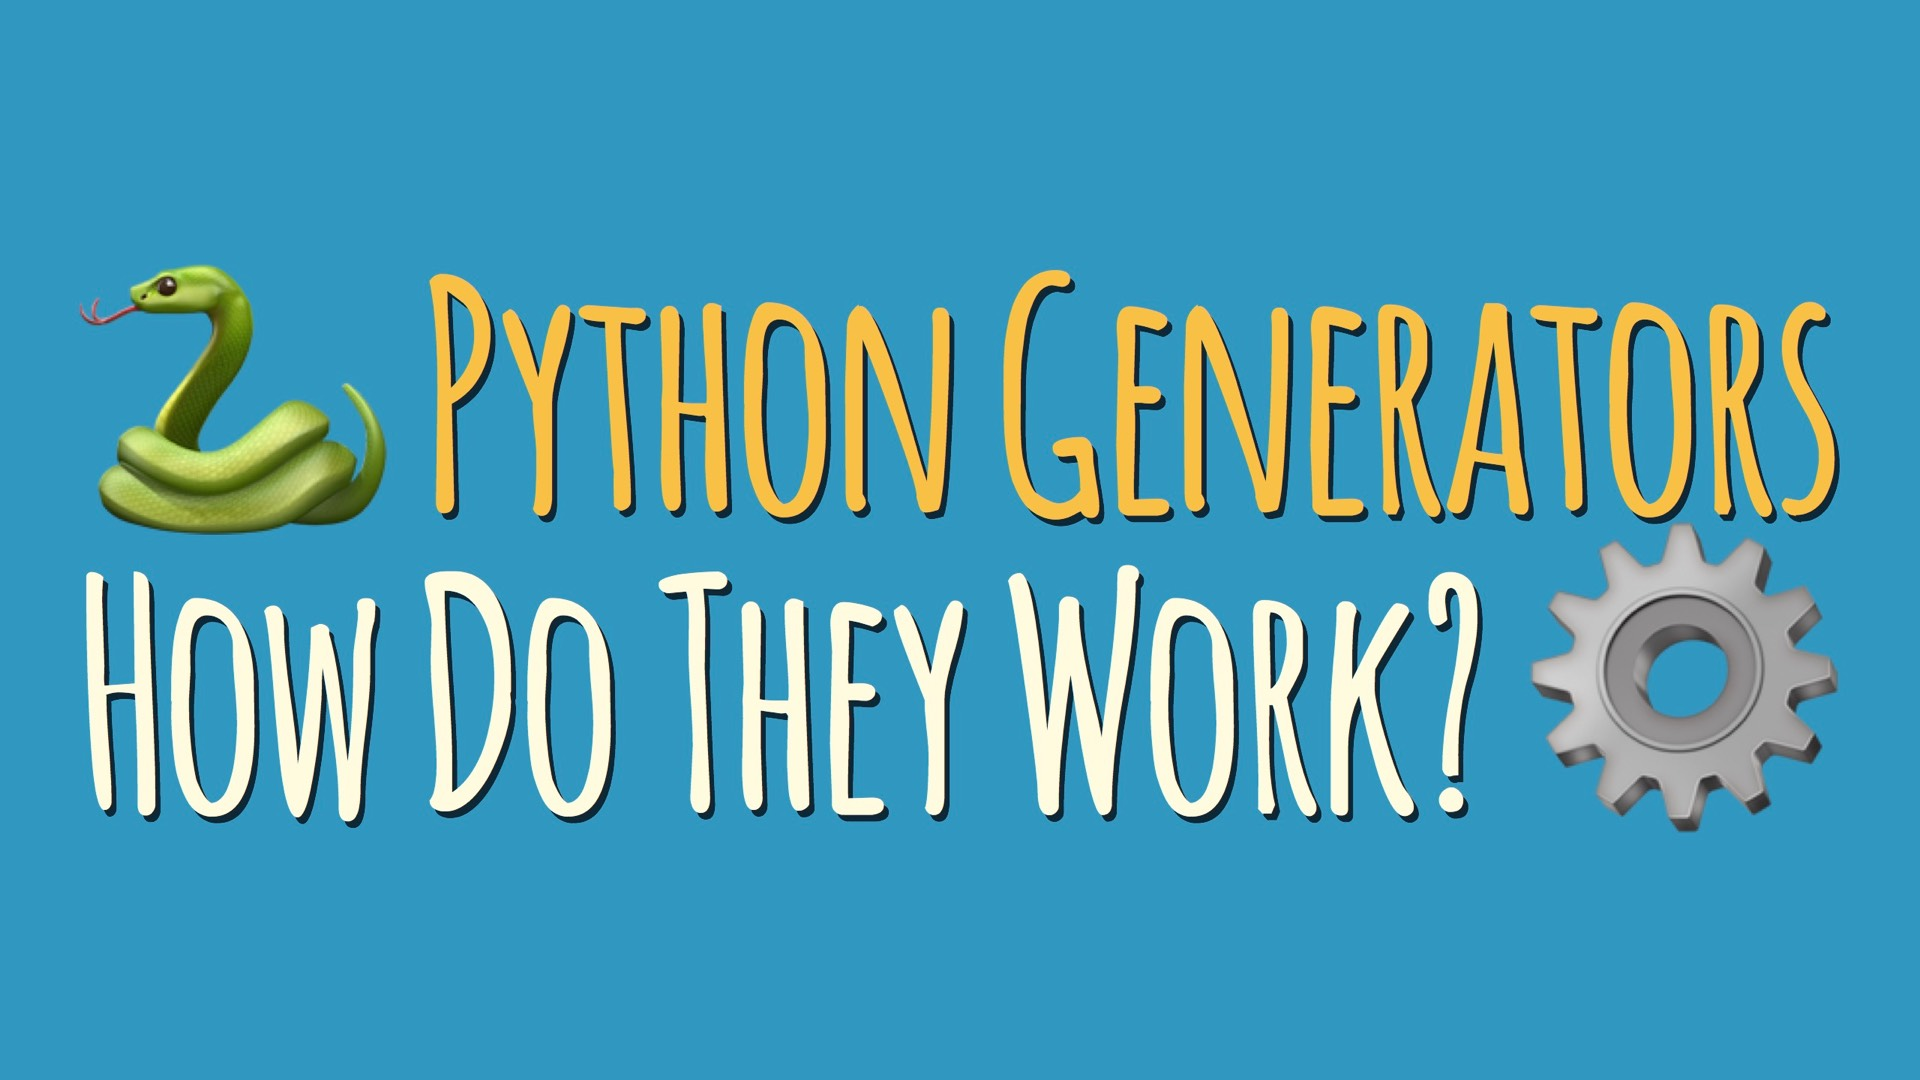 What Are Python Generators?